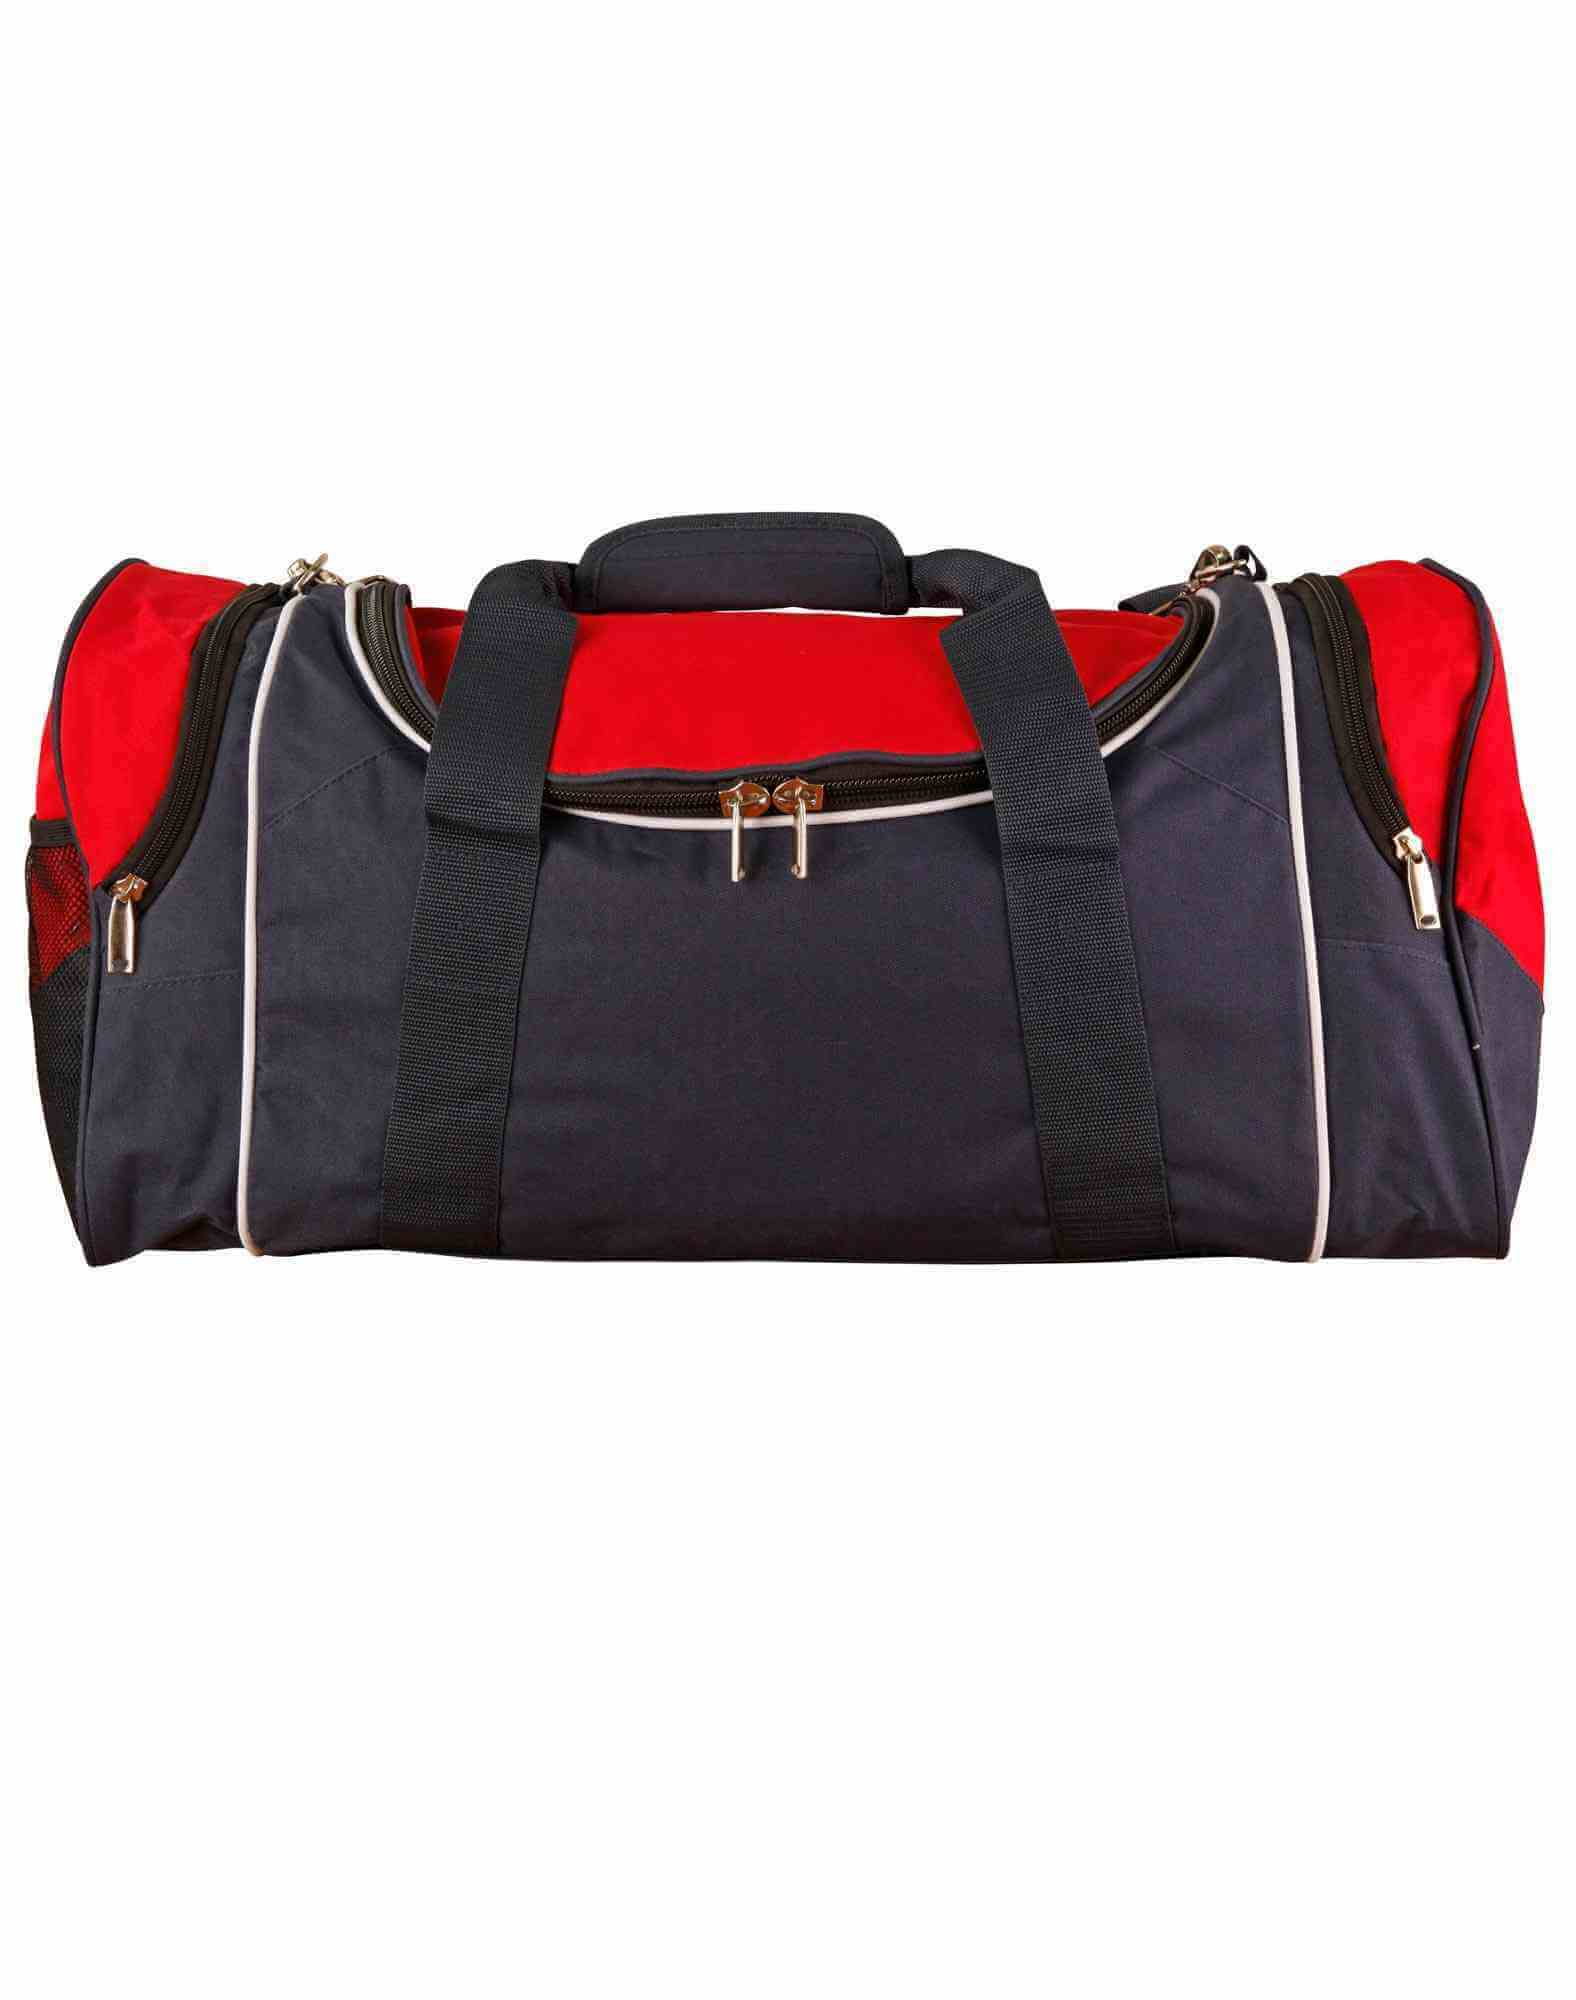 B2020 Sports Travel Bag03 08 2015 11 00 43 - B2020 Sports Travel Bag